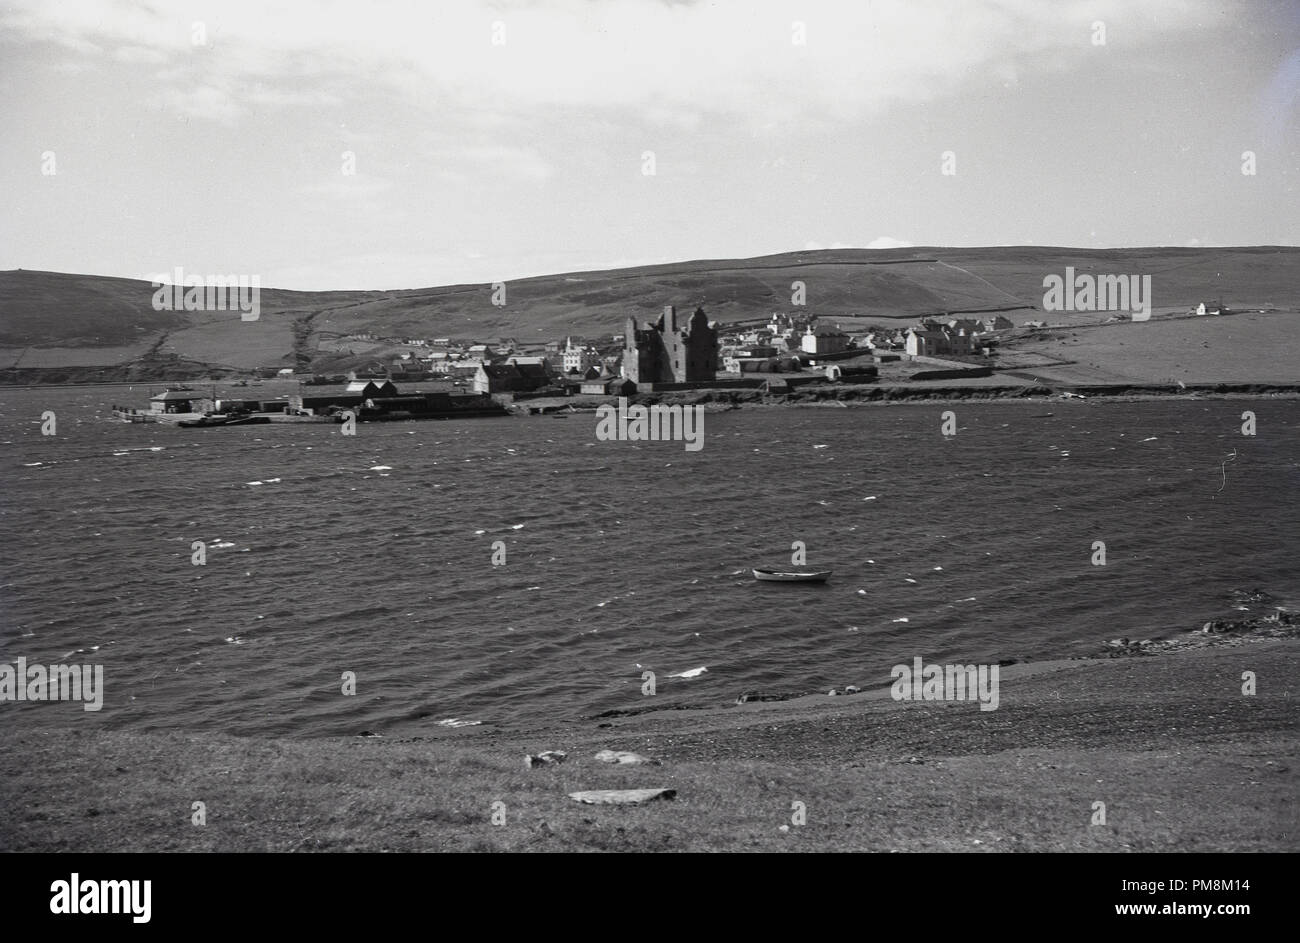 1950s, historical, a small settlement by an esuary on the Orkney Islands off the north coast of Scotland. These barren, low-lying islands are notable for the lack of trees and the strong tidal currents in the firths. - Stock Image